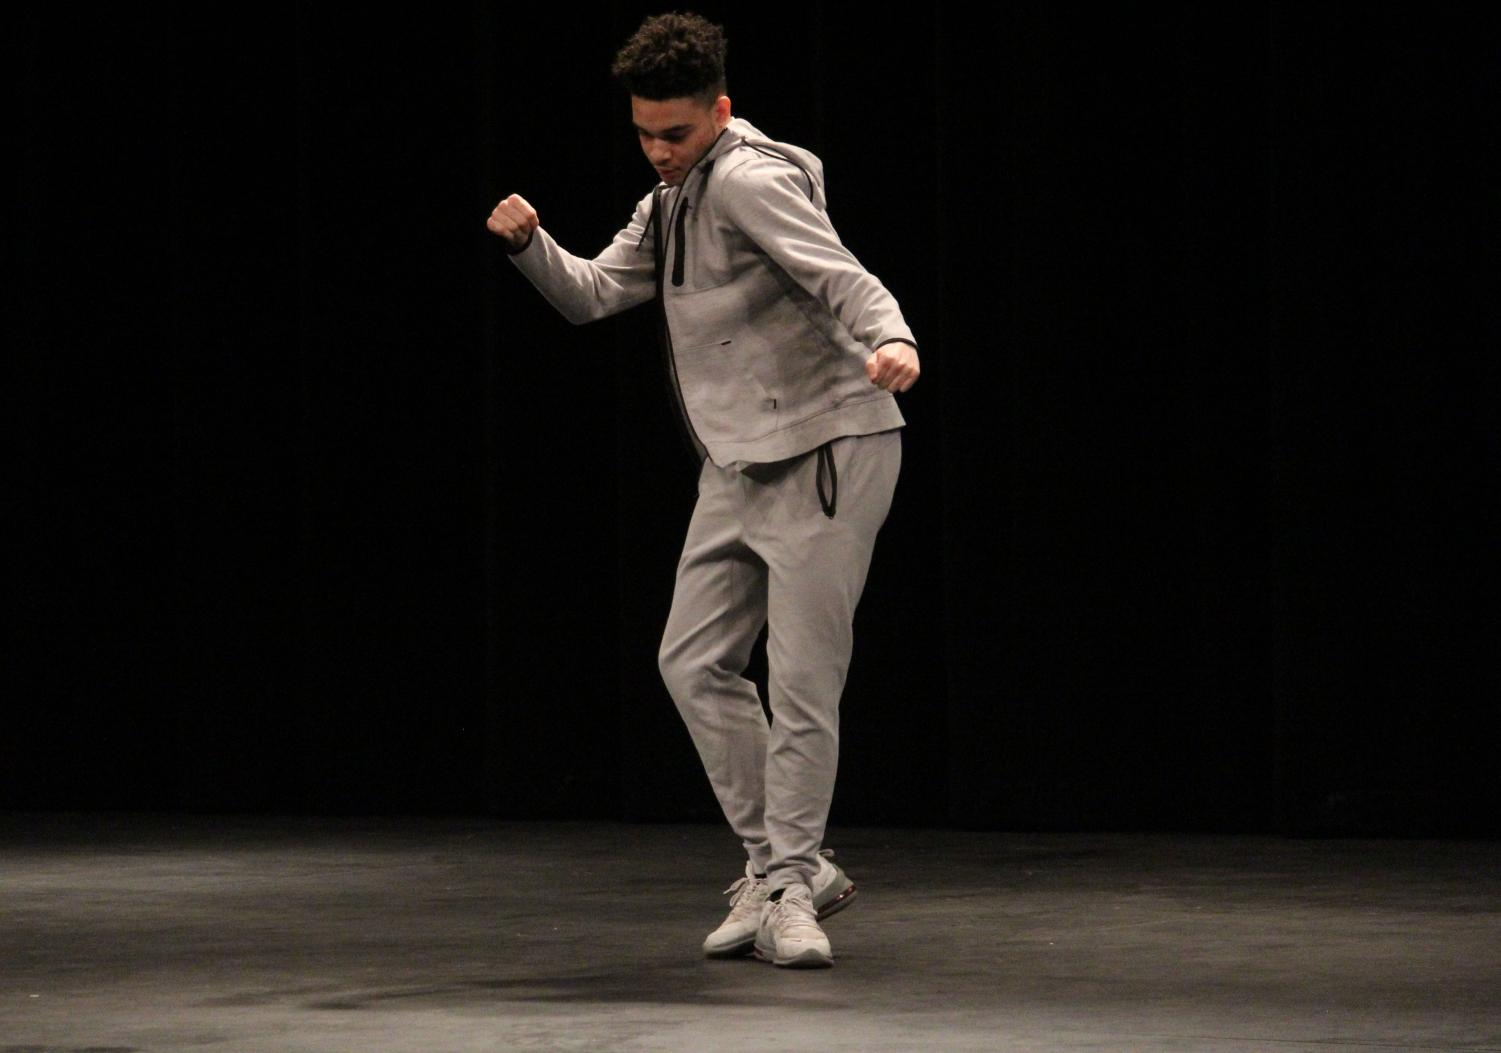 Bryant Igwe (12) shows off his dancing skills on the stage.